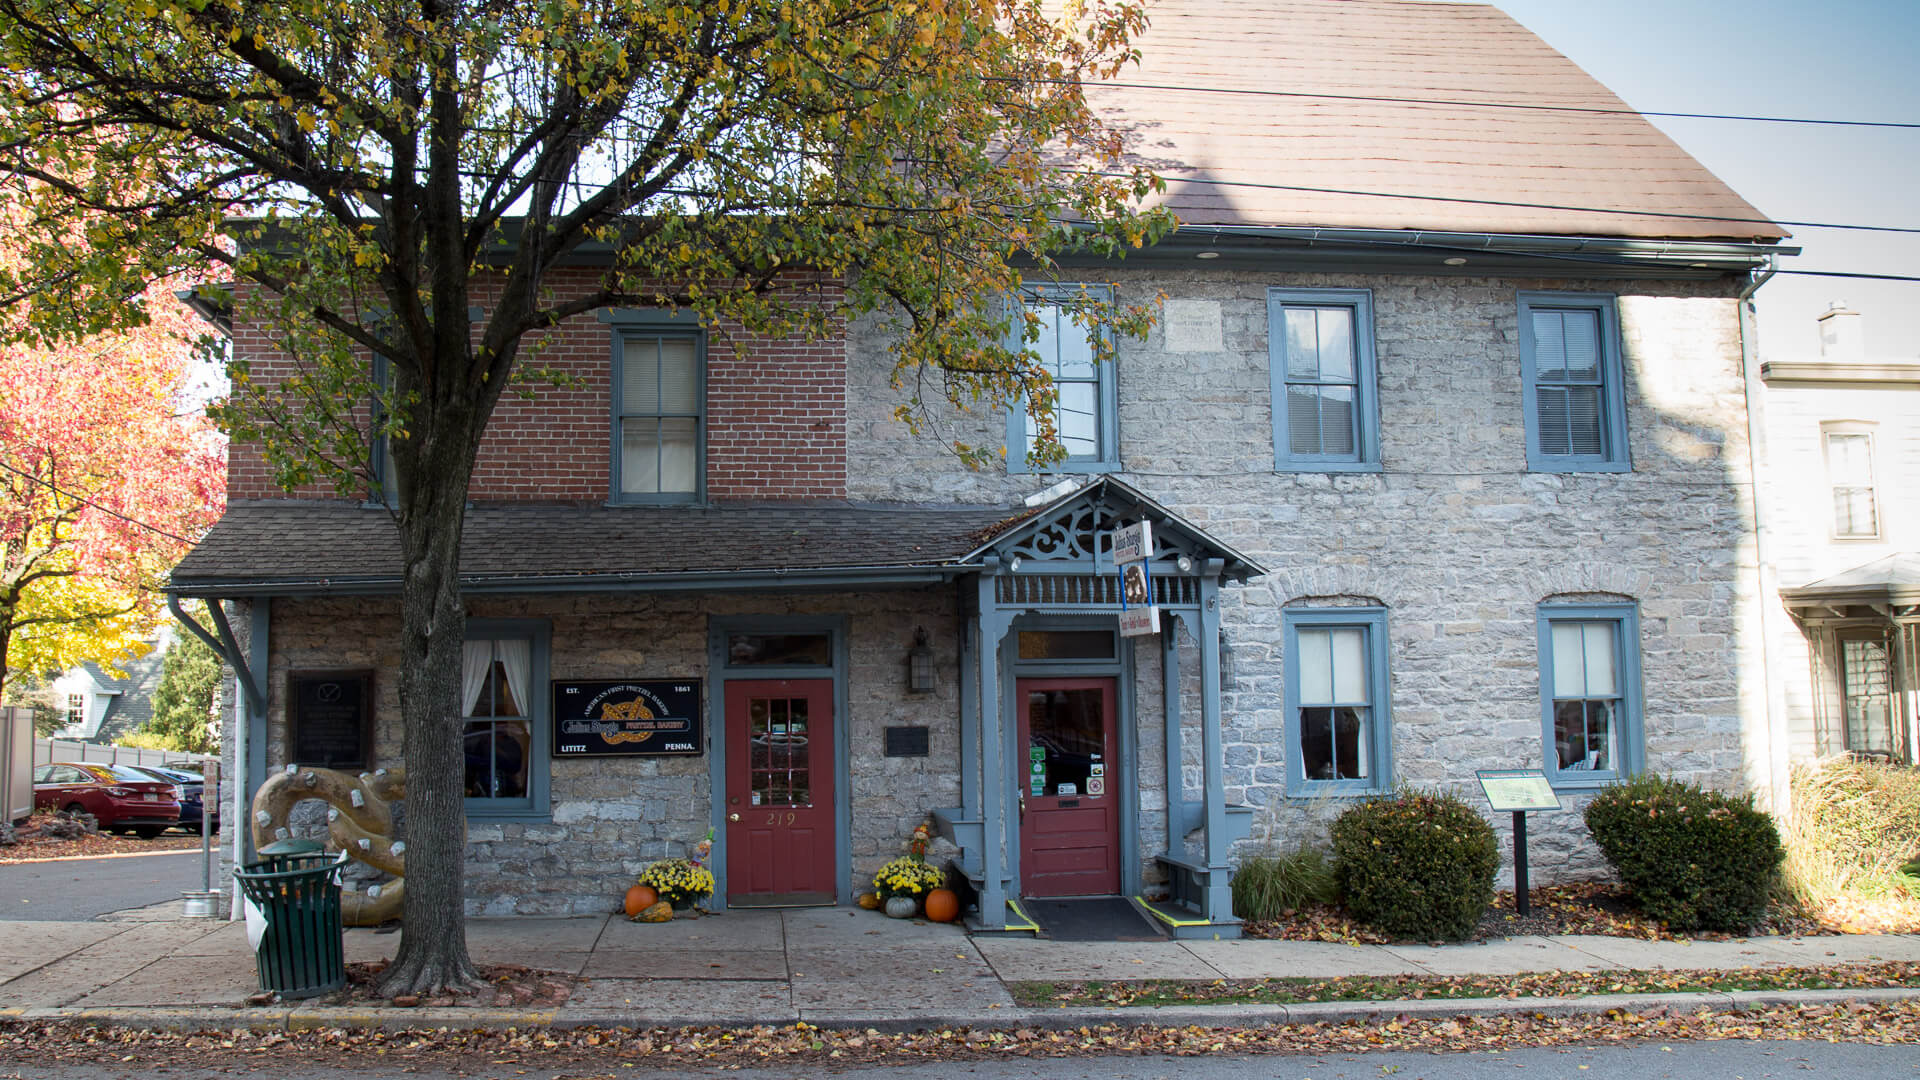 Julius Sturgis Pretzel House in Lititz Pennsylvania